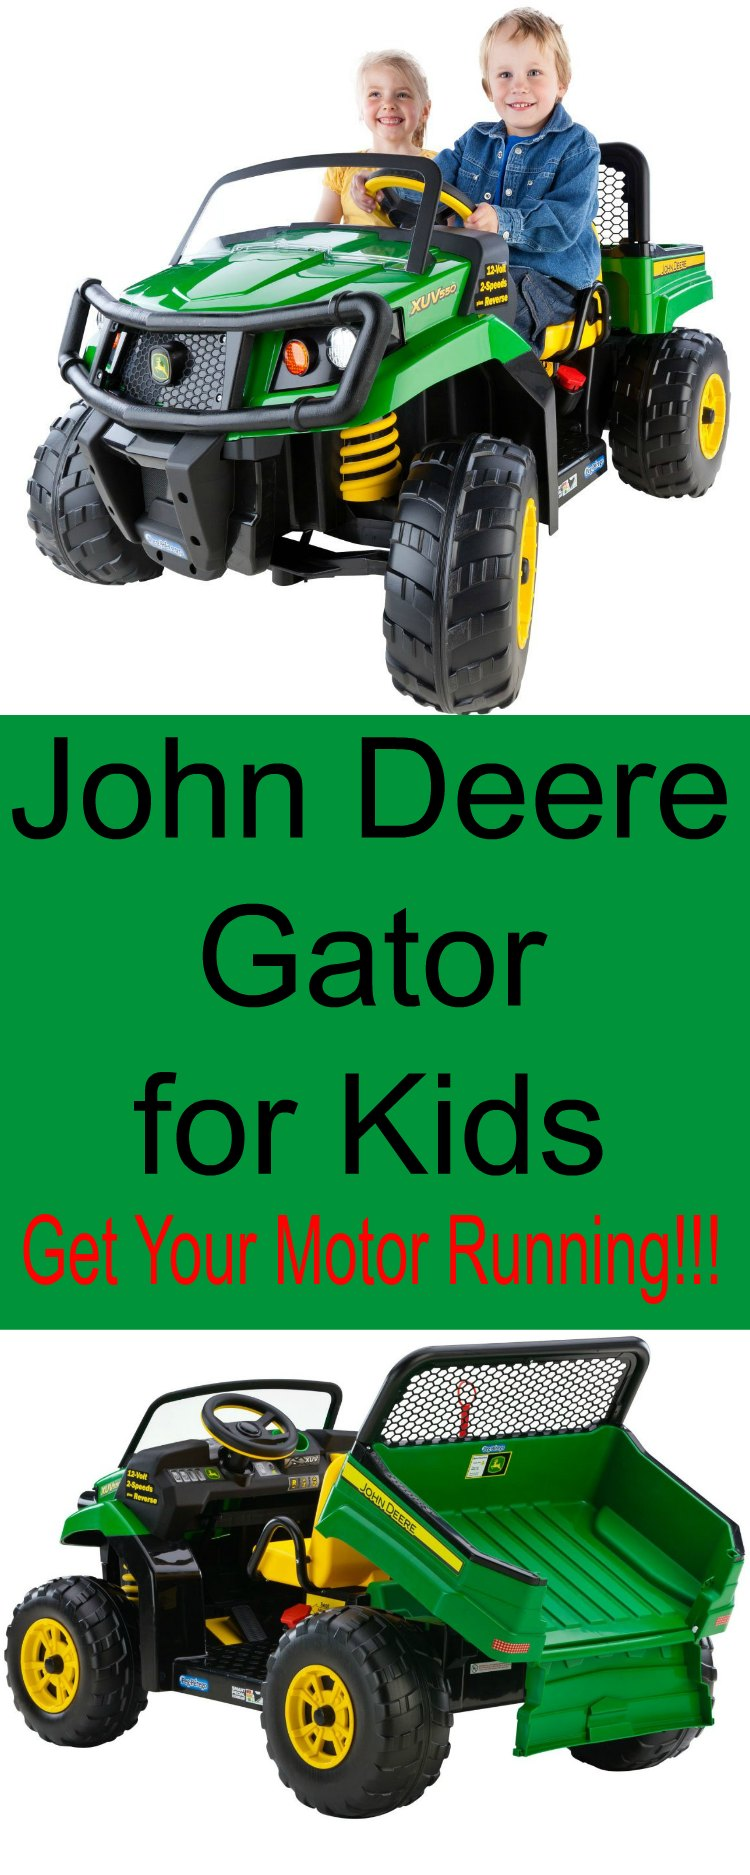 John Deere Gator for Kids